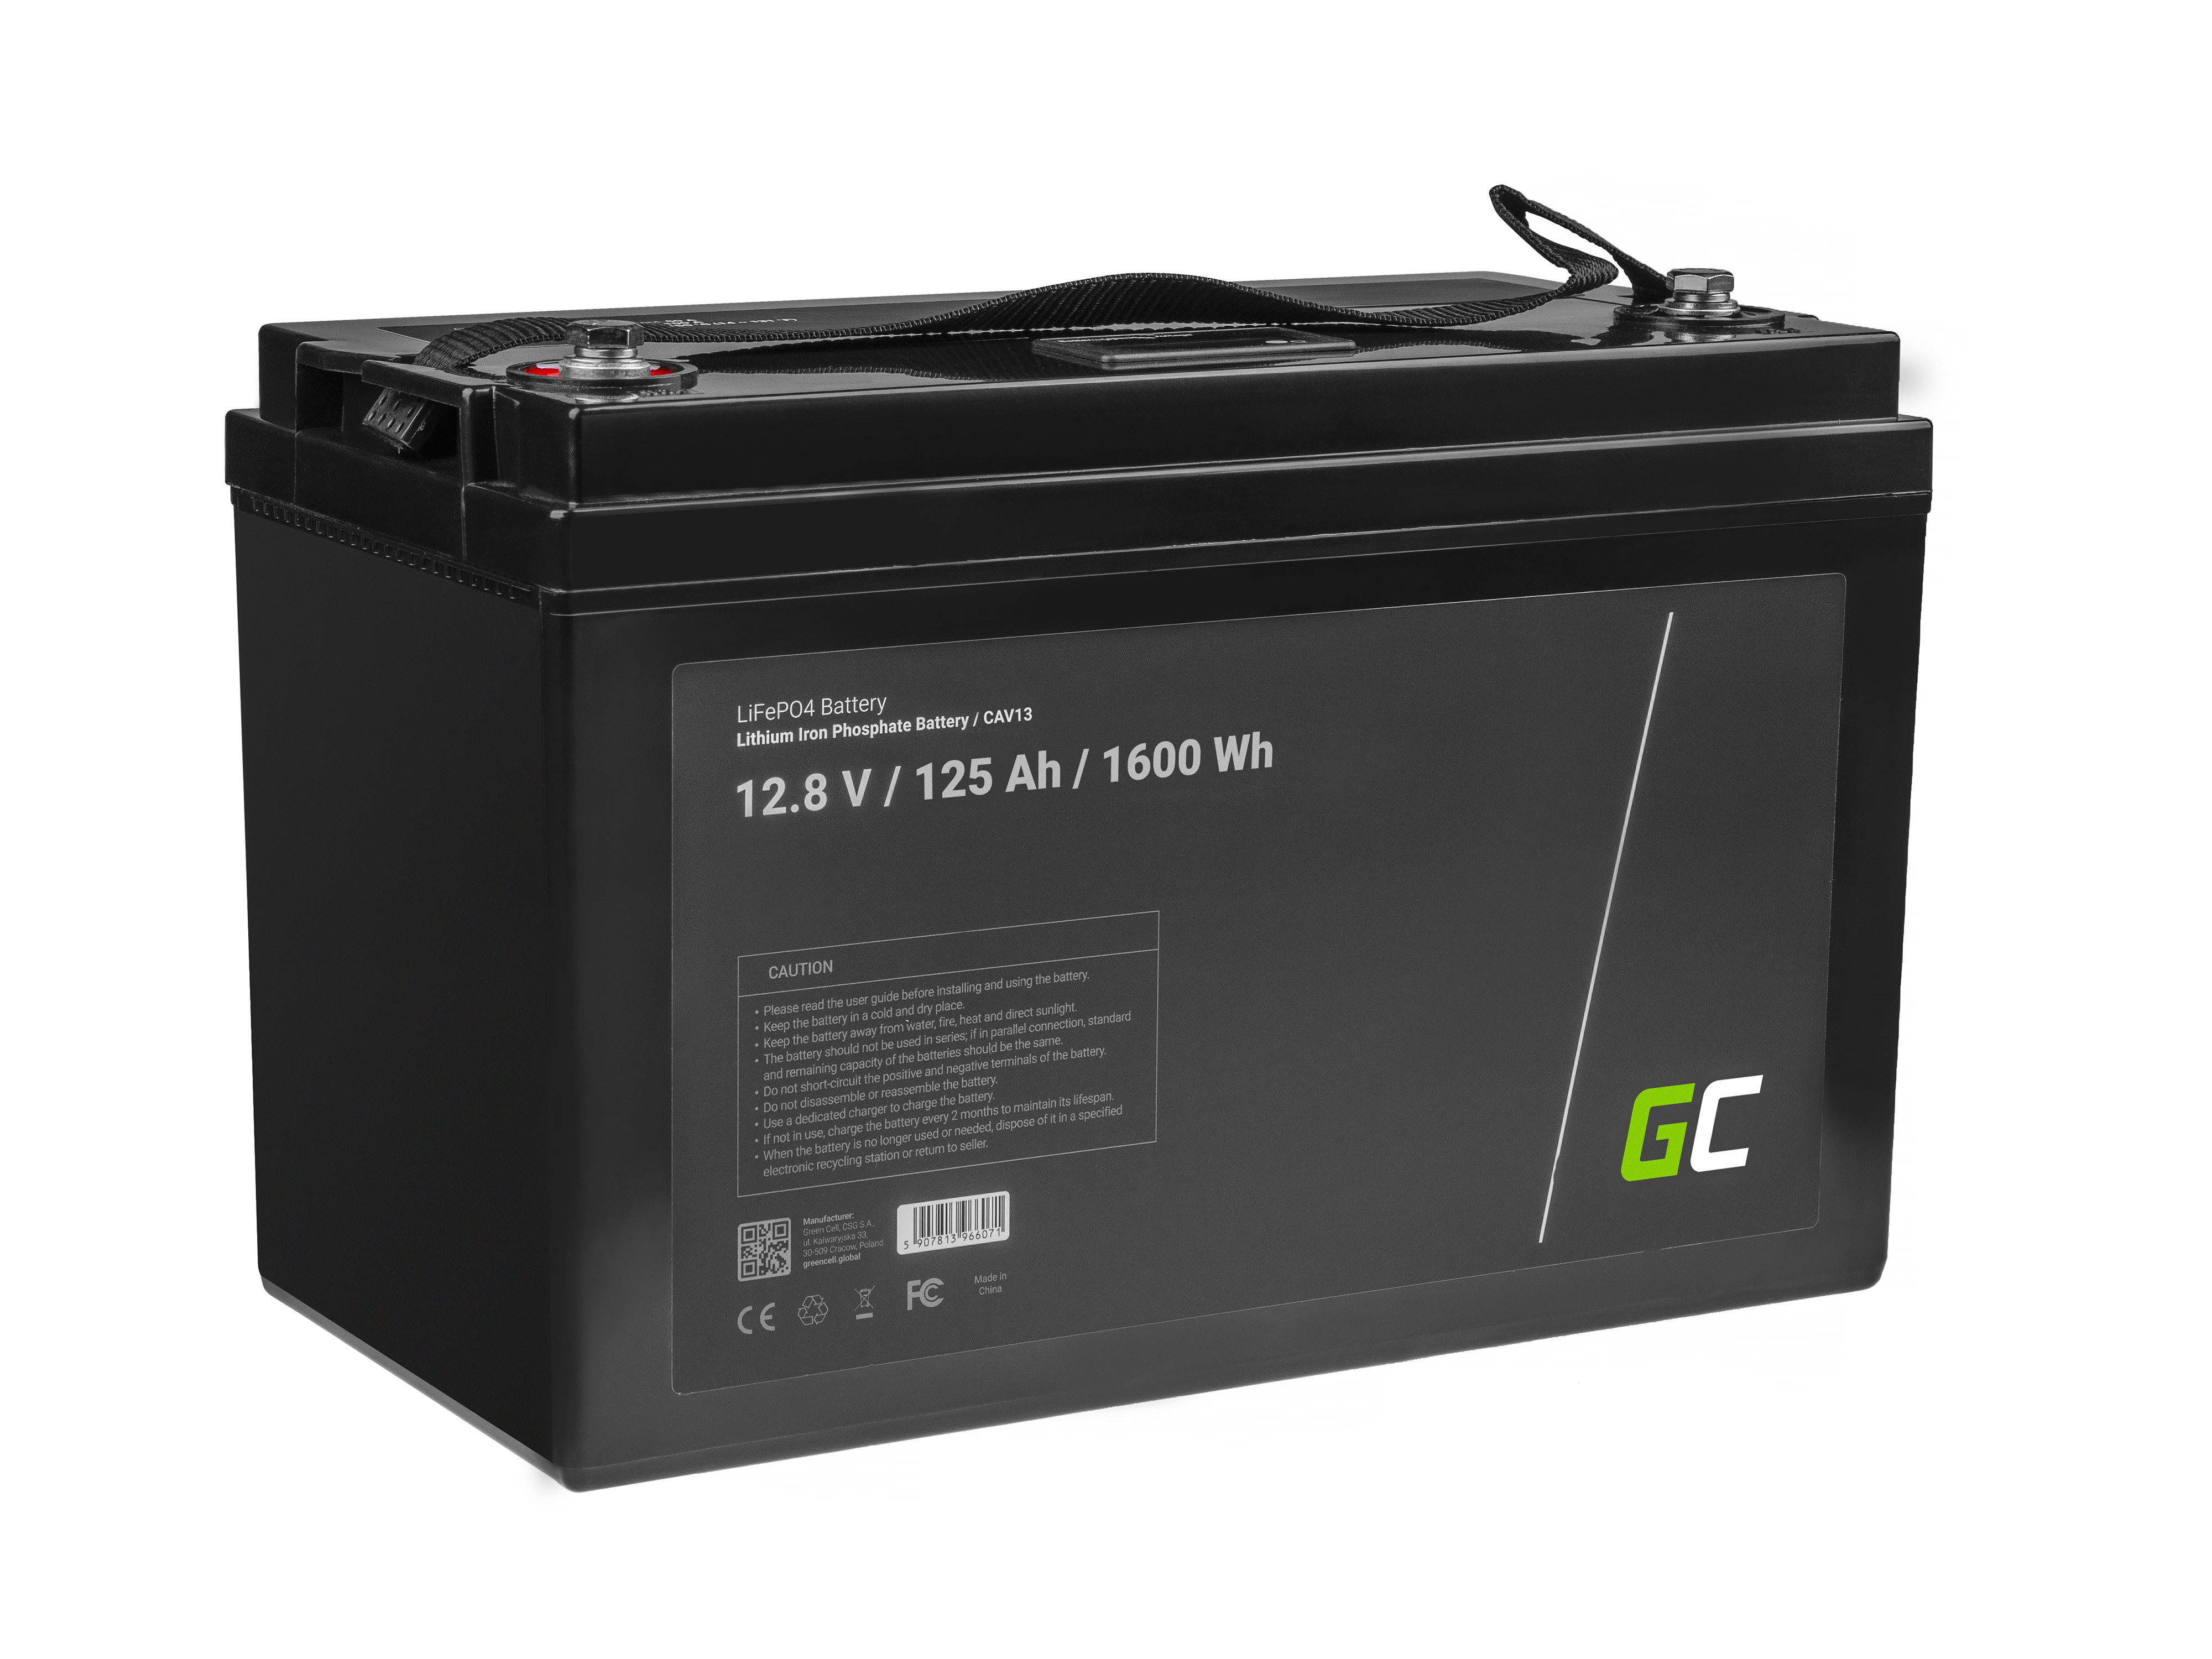 Battery Lithium-iron-phosphate LiFePO4 Green Cell 12V 12.8V 125Ah for photovoltaic system, campers and boats